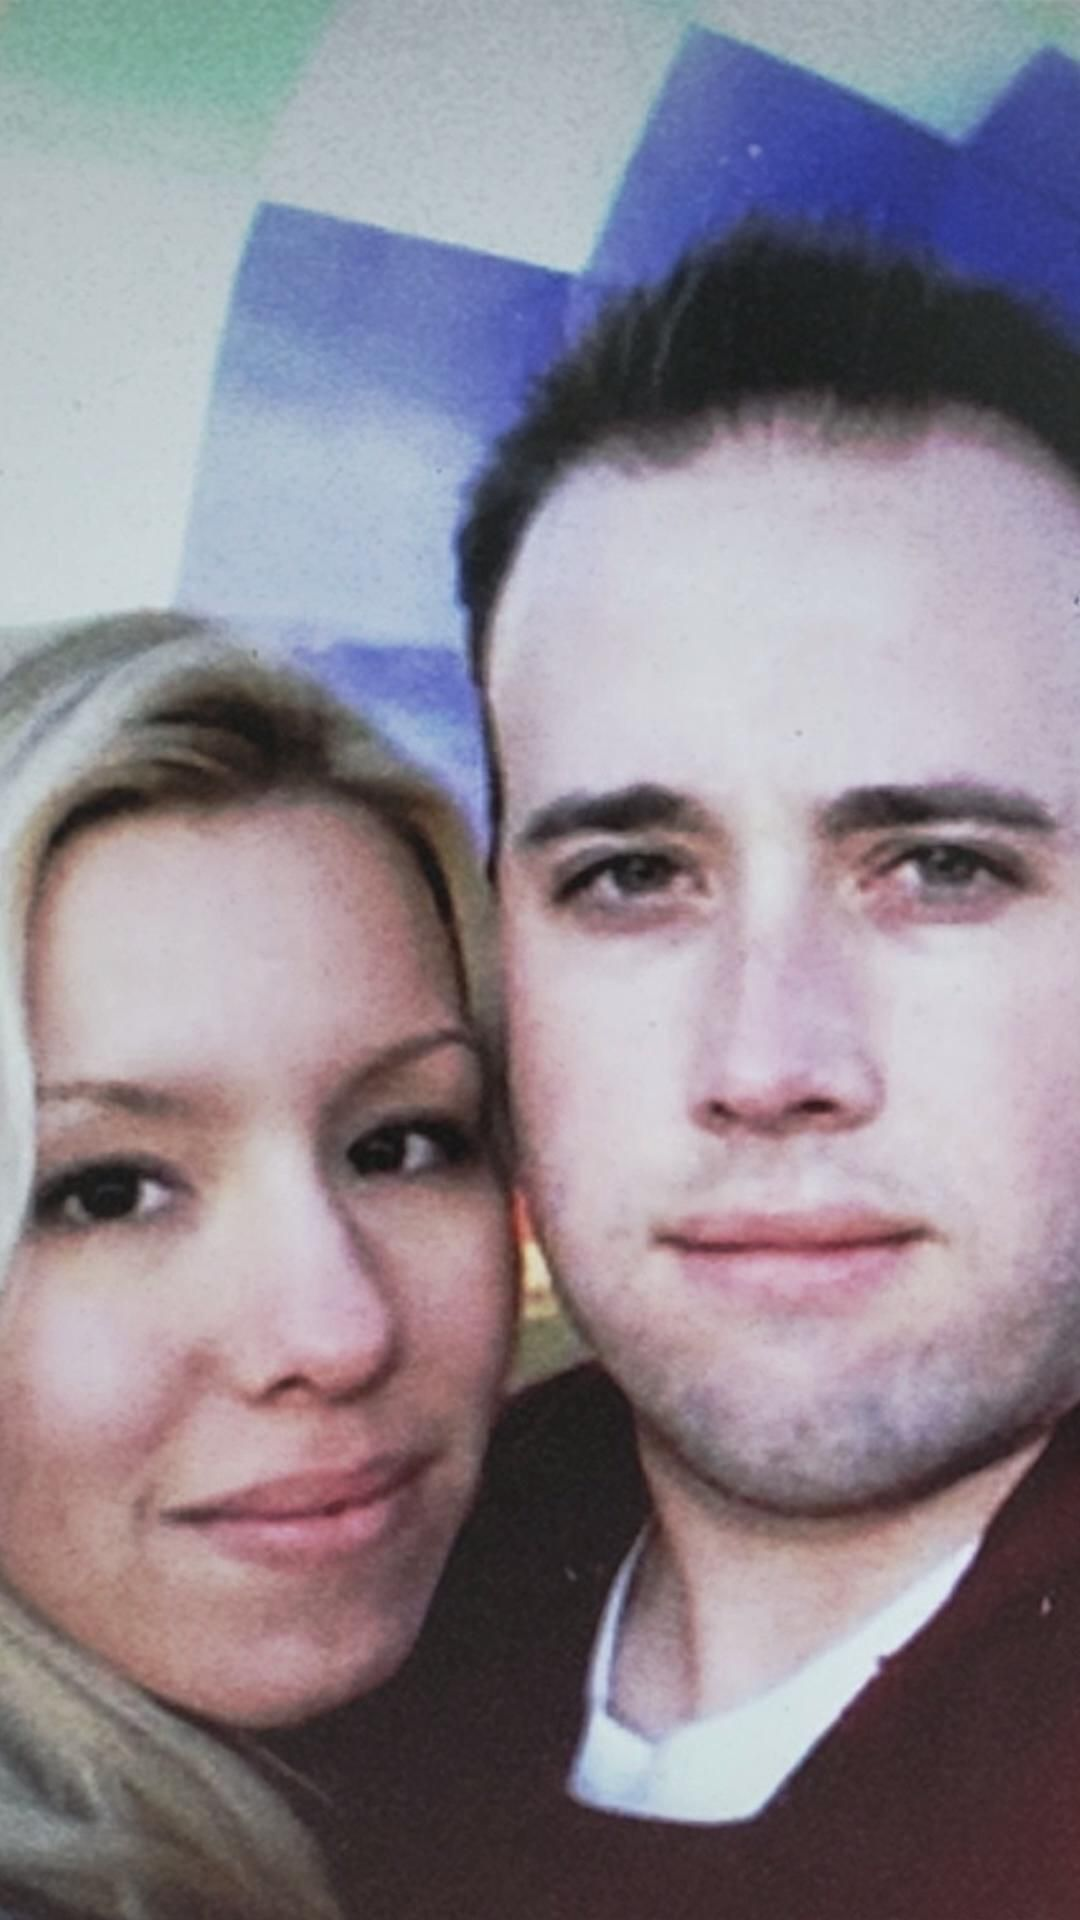 If I Can't Have You: The Jodi Arias Story is now streaming exclusively on discovery+.